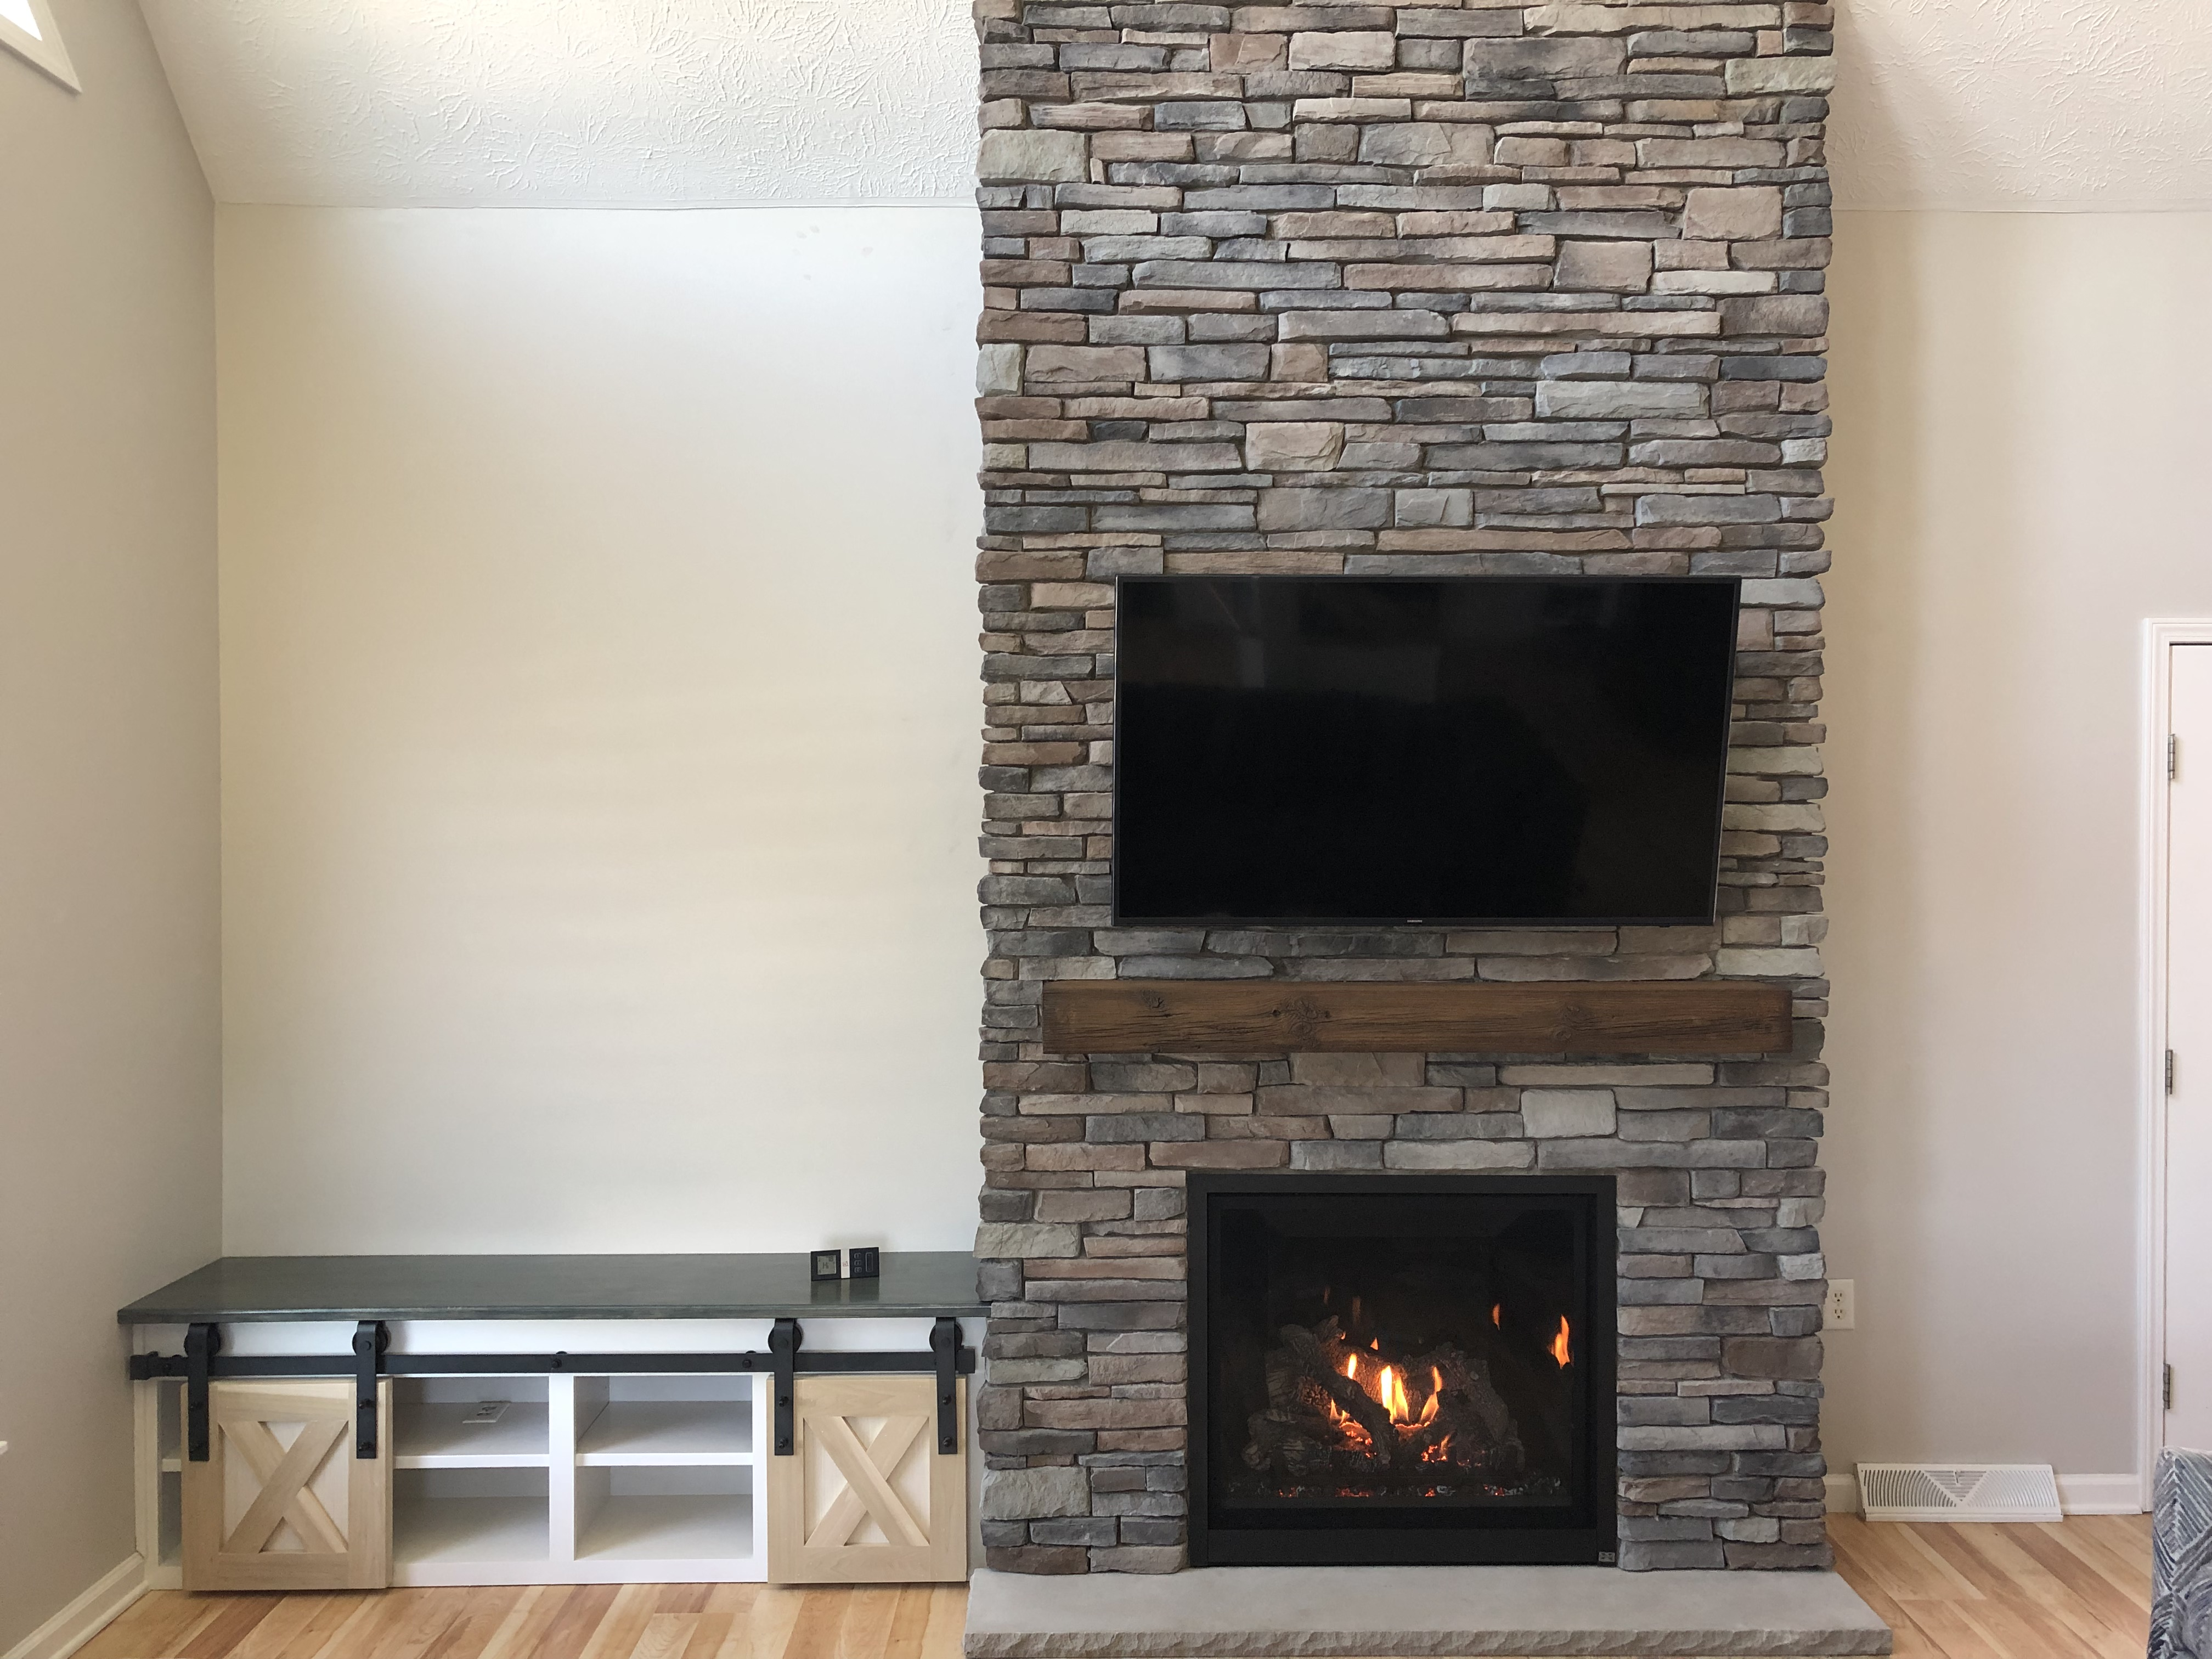 Image of a Probuilder 36CF Gas fireplace by Travis Industries featuring reflective black glass interior and Rustic Beam MagraHearth Mantle.